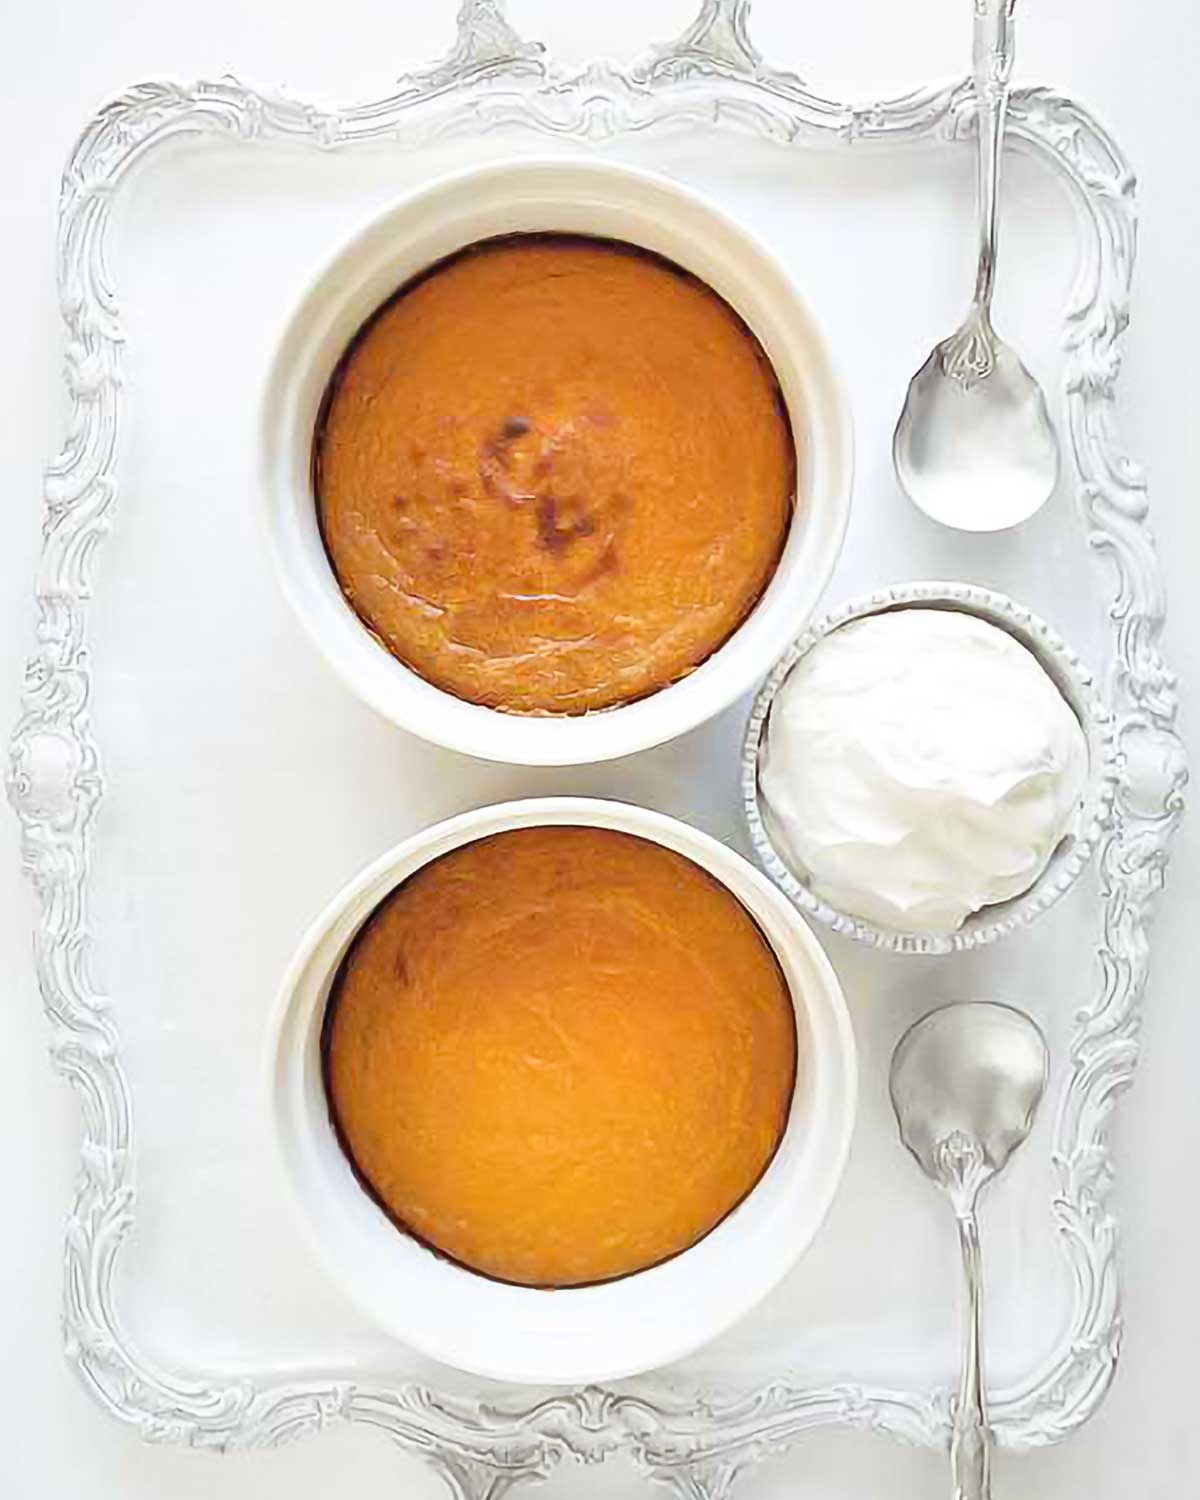 Two sweet potato puddings in white souffle dishes on a silver tray with spoons and a bowl of whipped cream beside them.